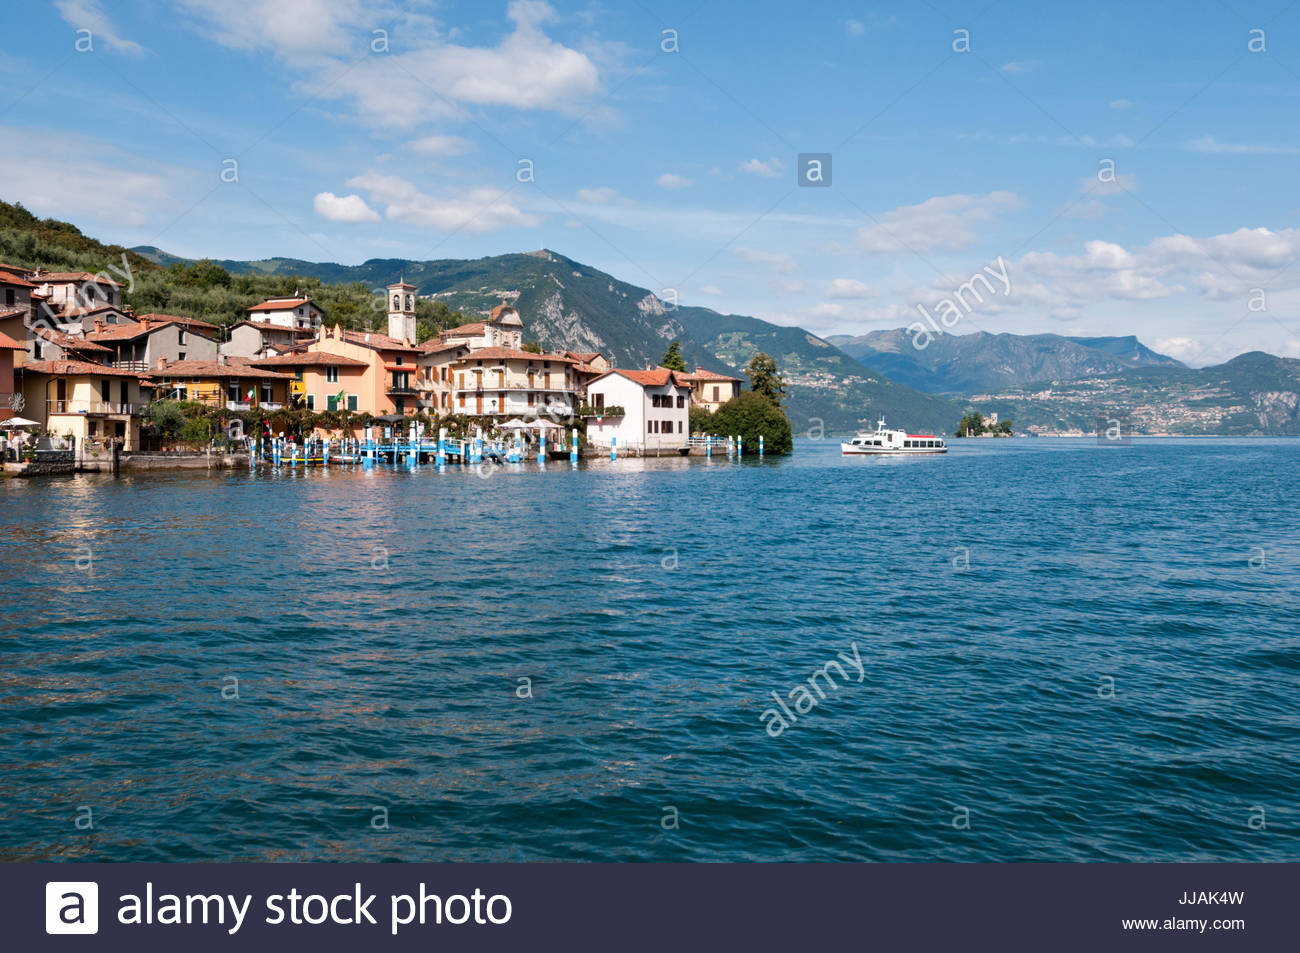 Carzano summer view, Monte Isola (or Montisola), Lake Iseo, Lombardy - Stock Image